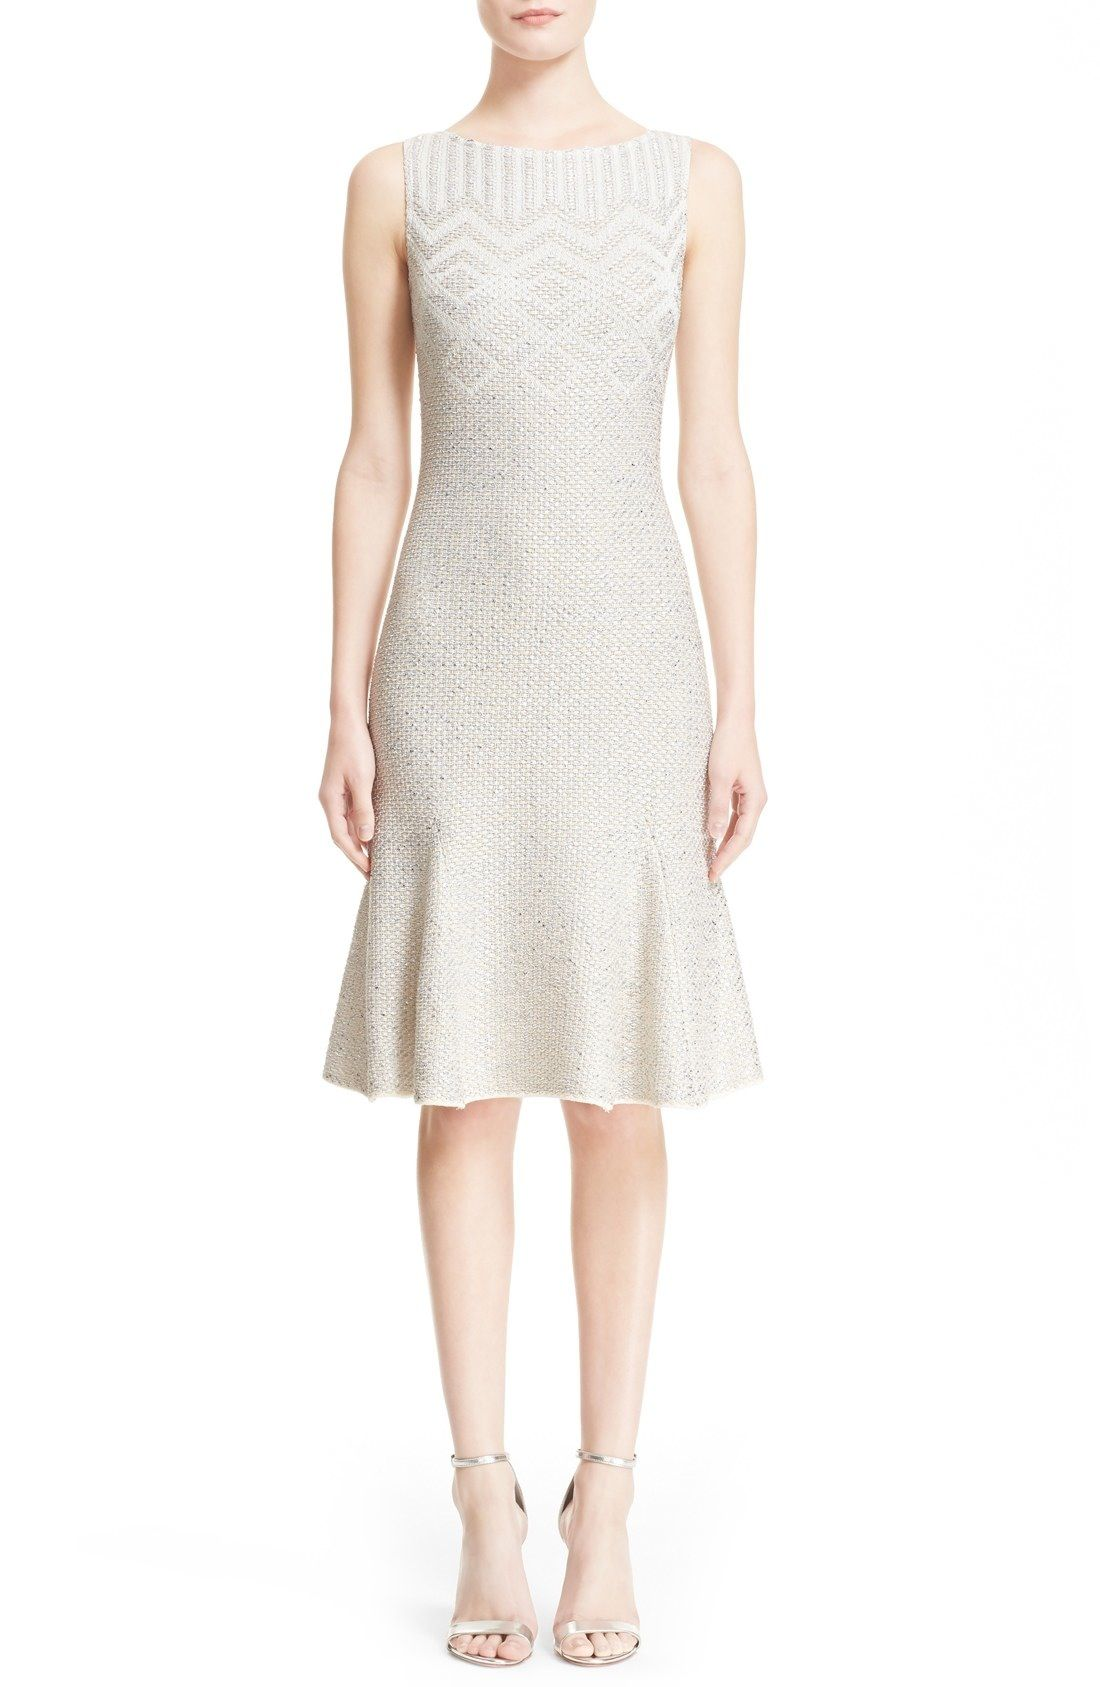 St. John Collection 'Adara' Flared Knit Dress available at #Nordstrom